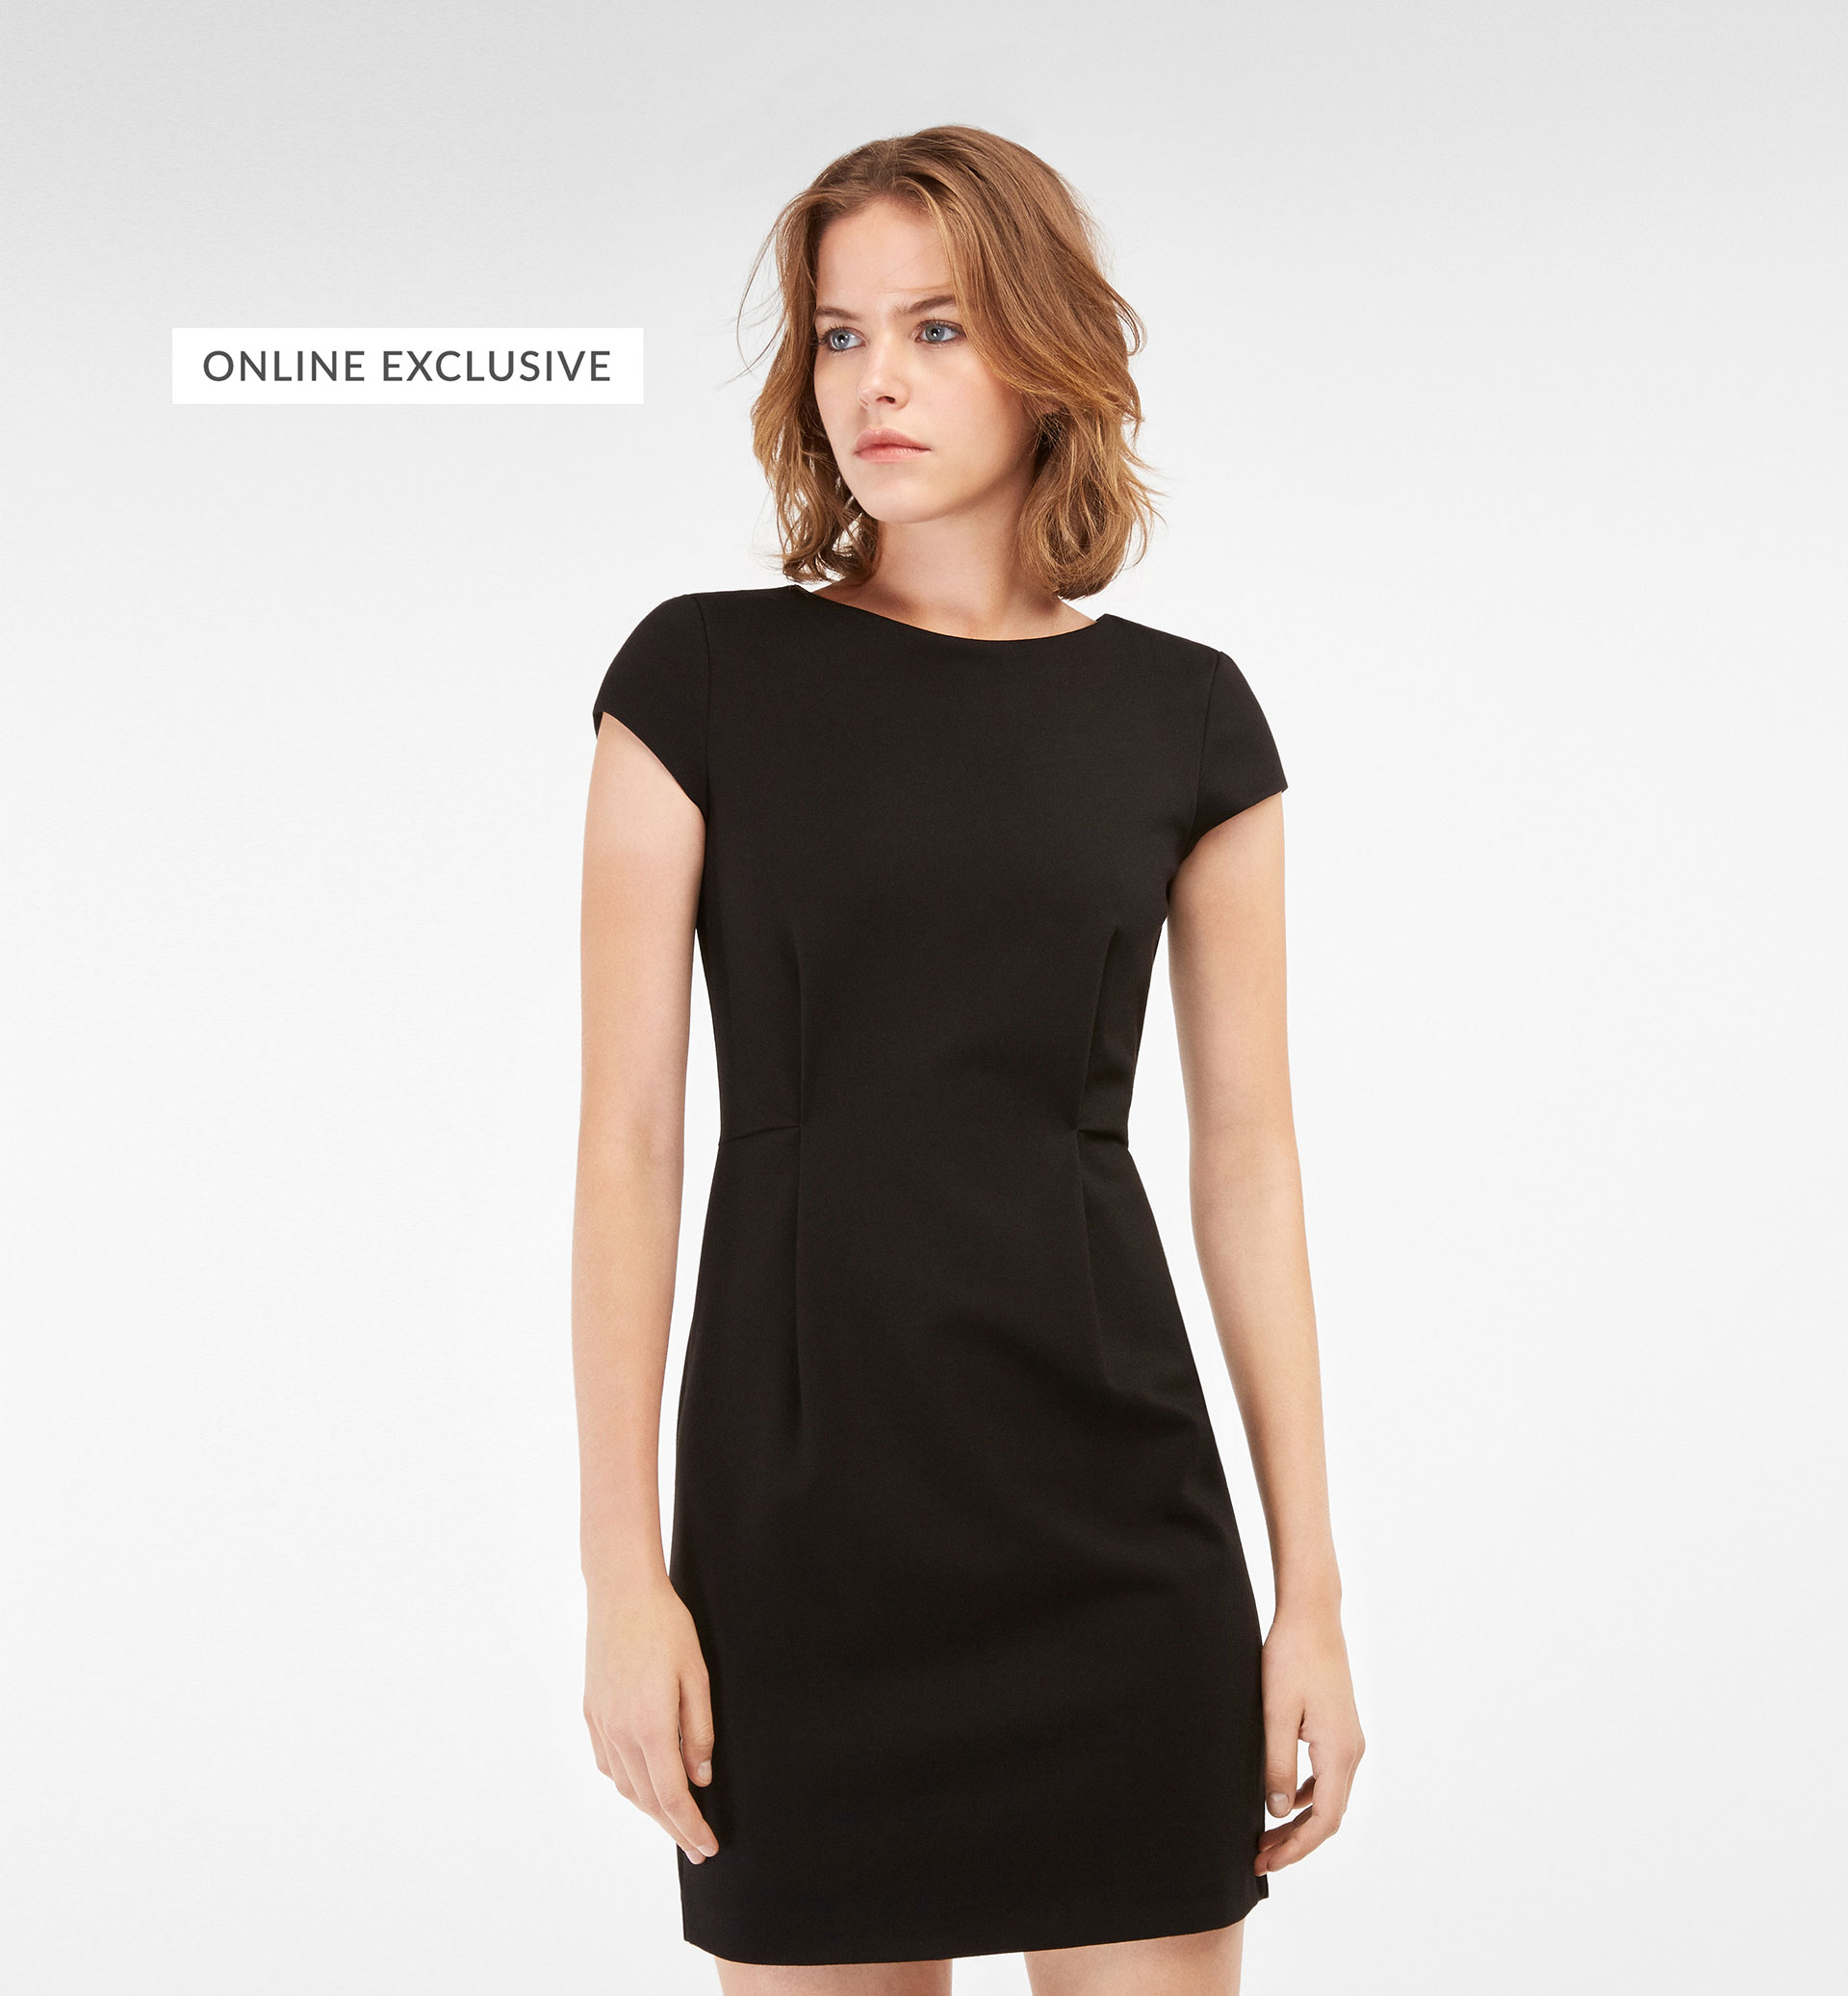 EXCLUSIVE ONLINE BLACK DRESS WITH PLEAT DETAIL